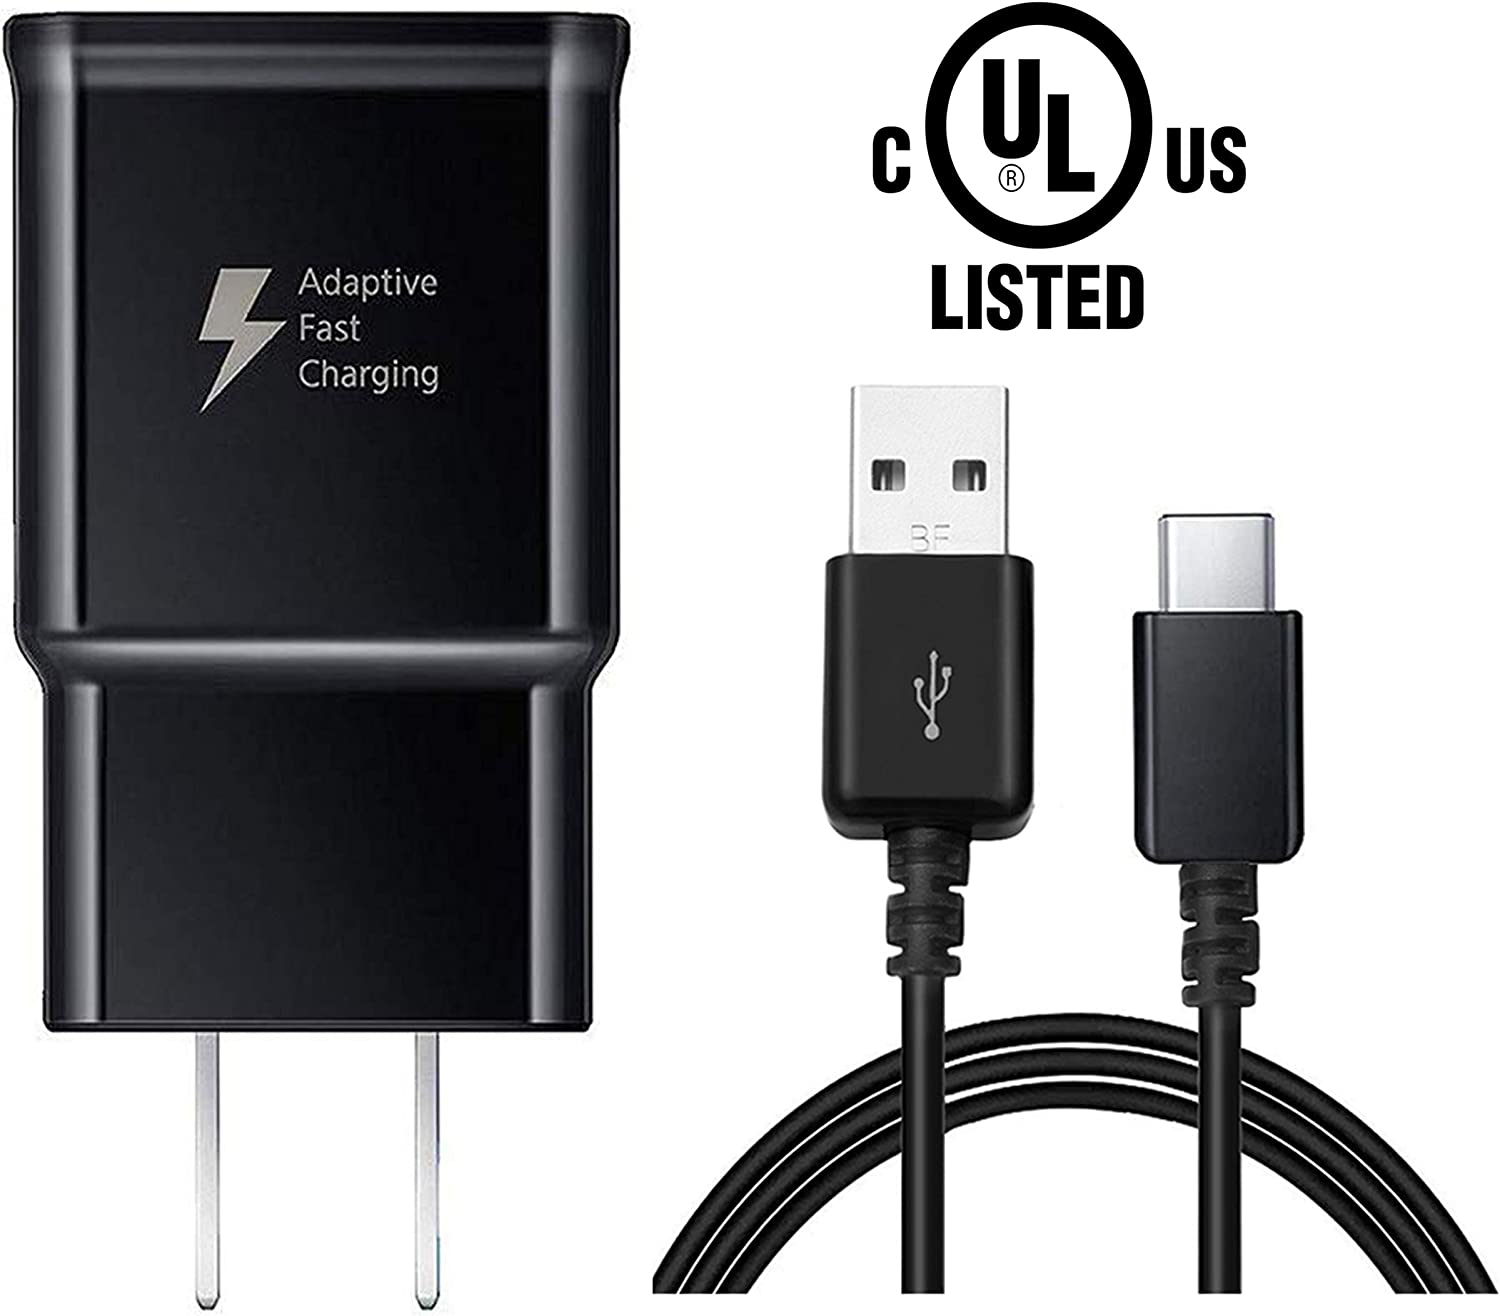 Adaptive Fast Wall Charger with USB Type-C Cable Compatible with Samsung Galaxy S8/S8 Plus/ S9/ S9+/ S10/ S10 Plus/Note 8/ Note 9 (Black)